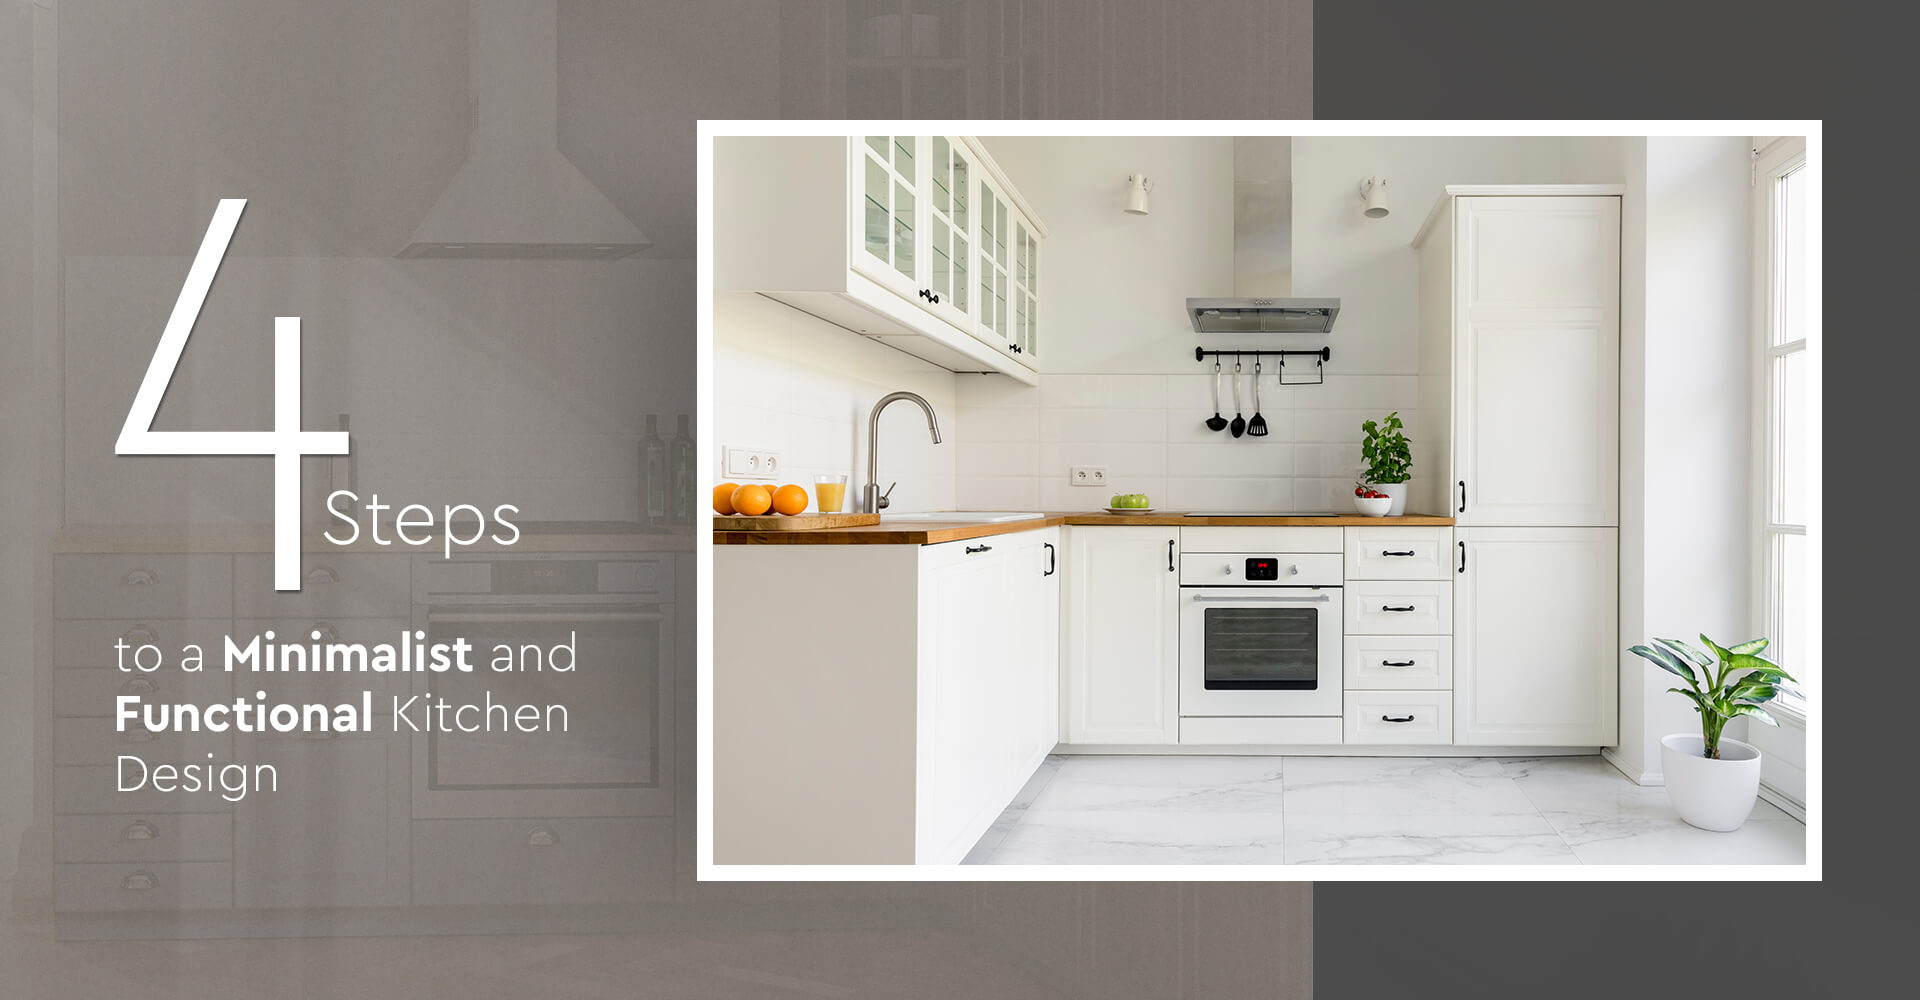 4 Steps to a Minimalist and Functional Kitchen Design